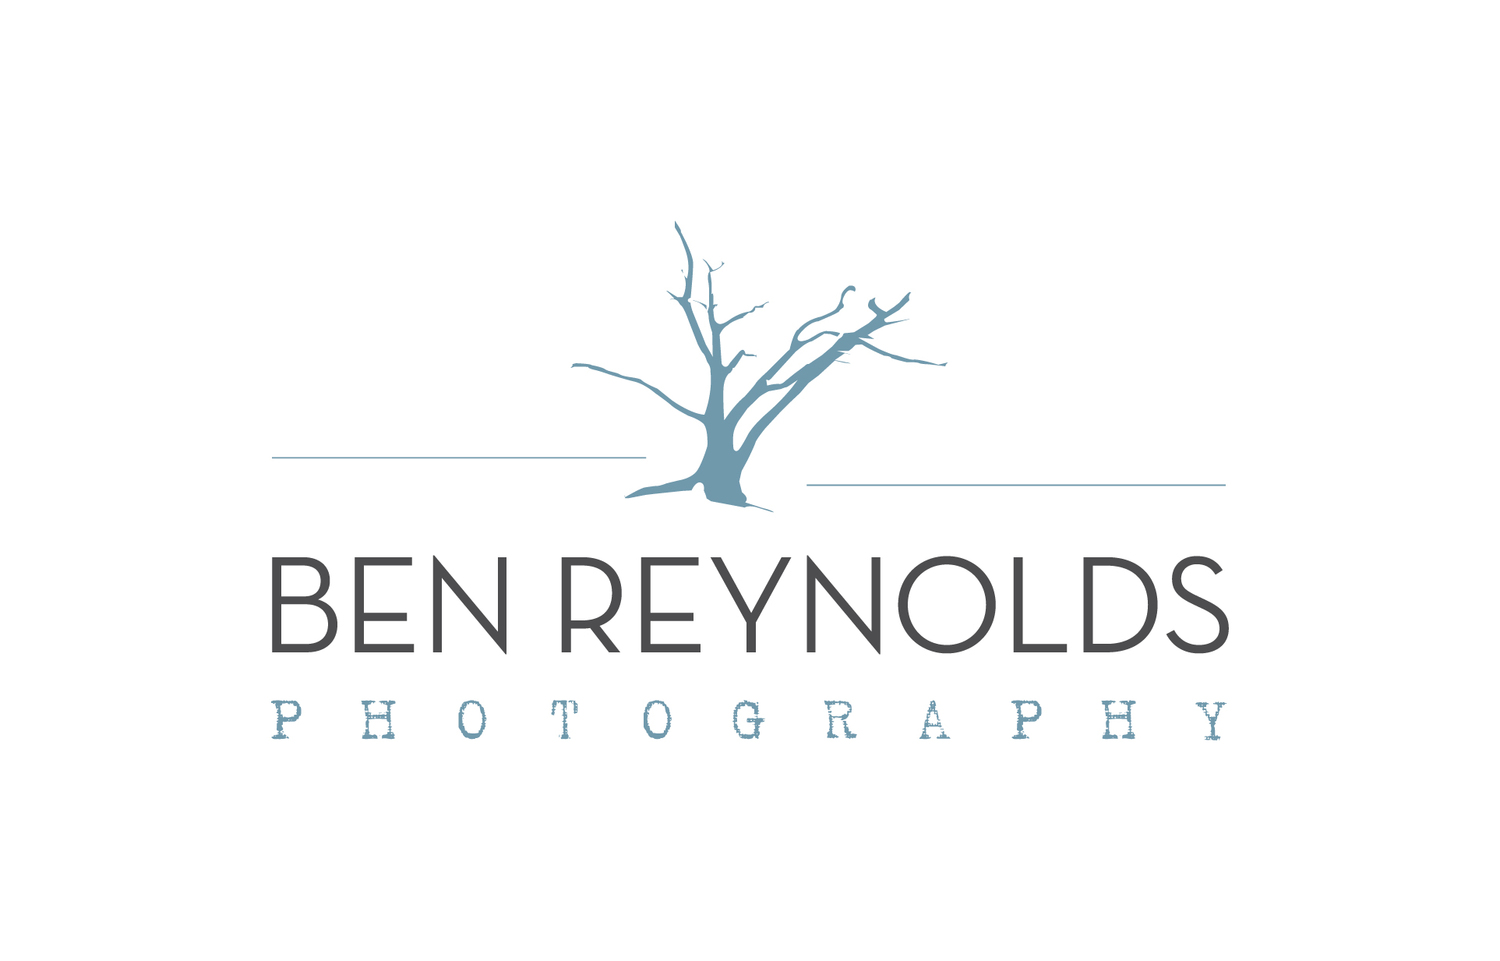 Ben Reynolds Photography